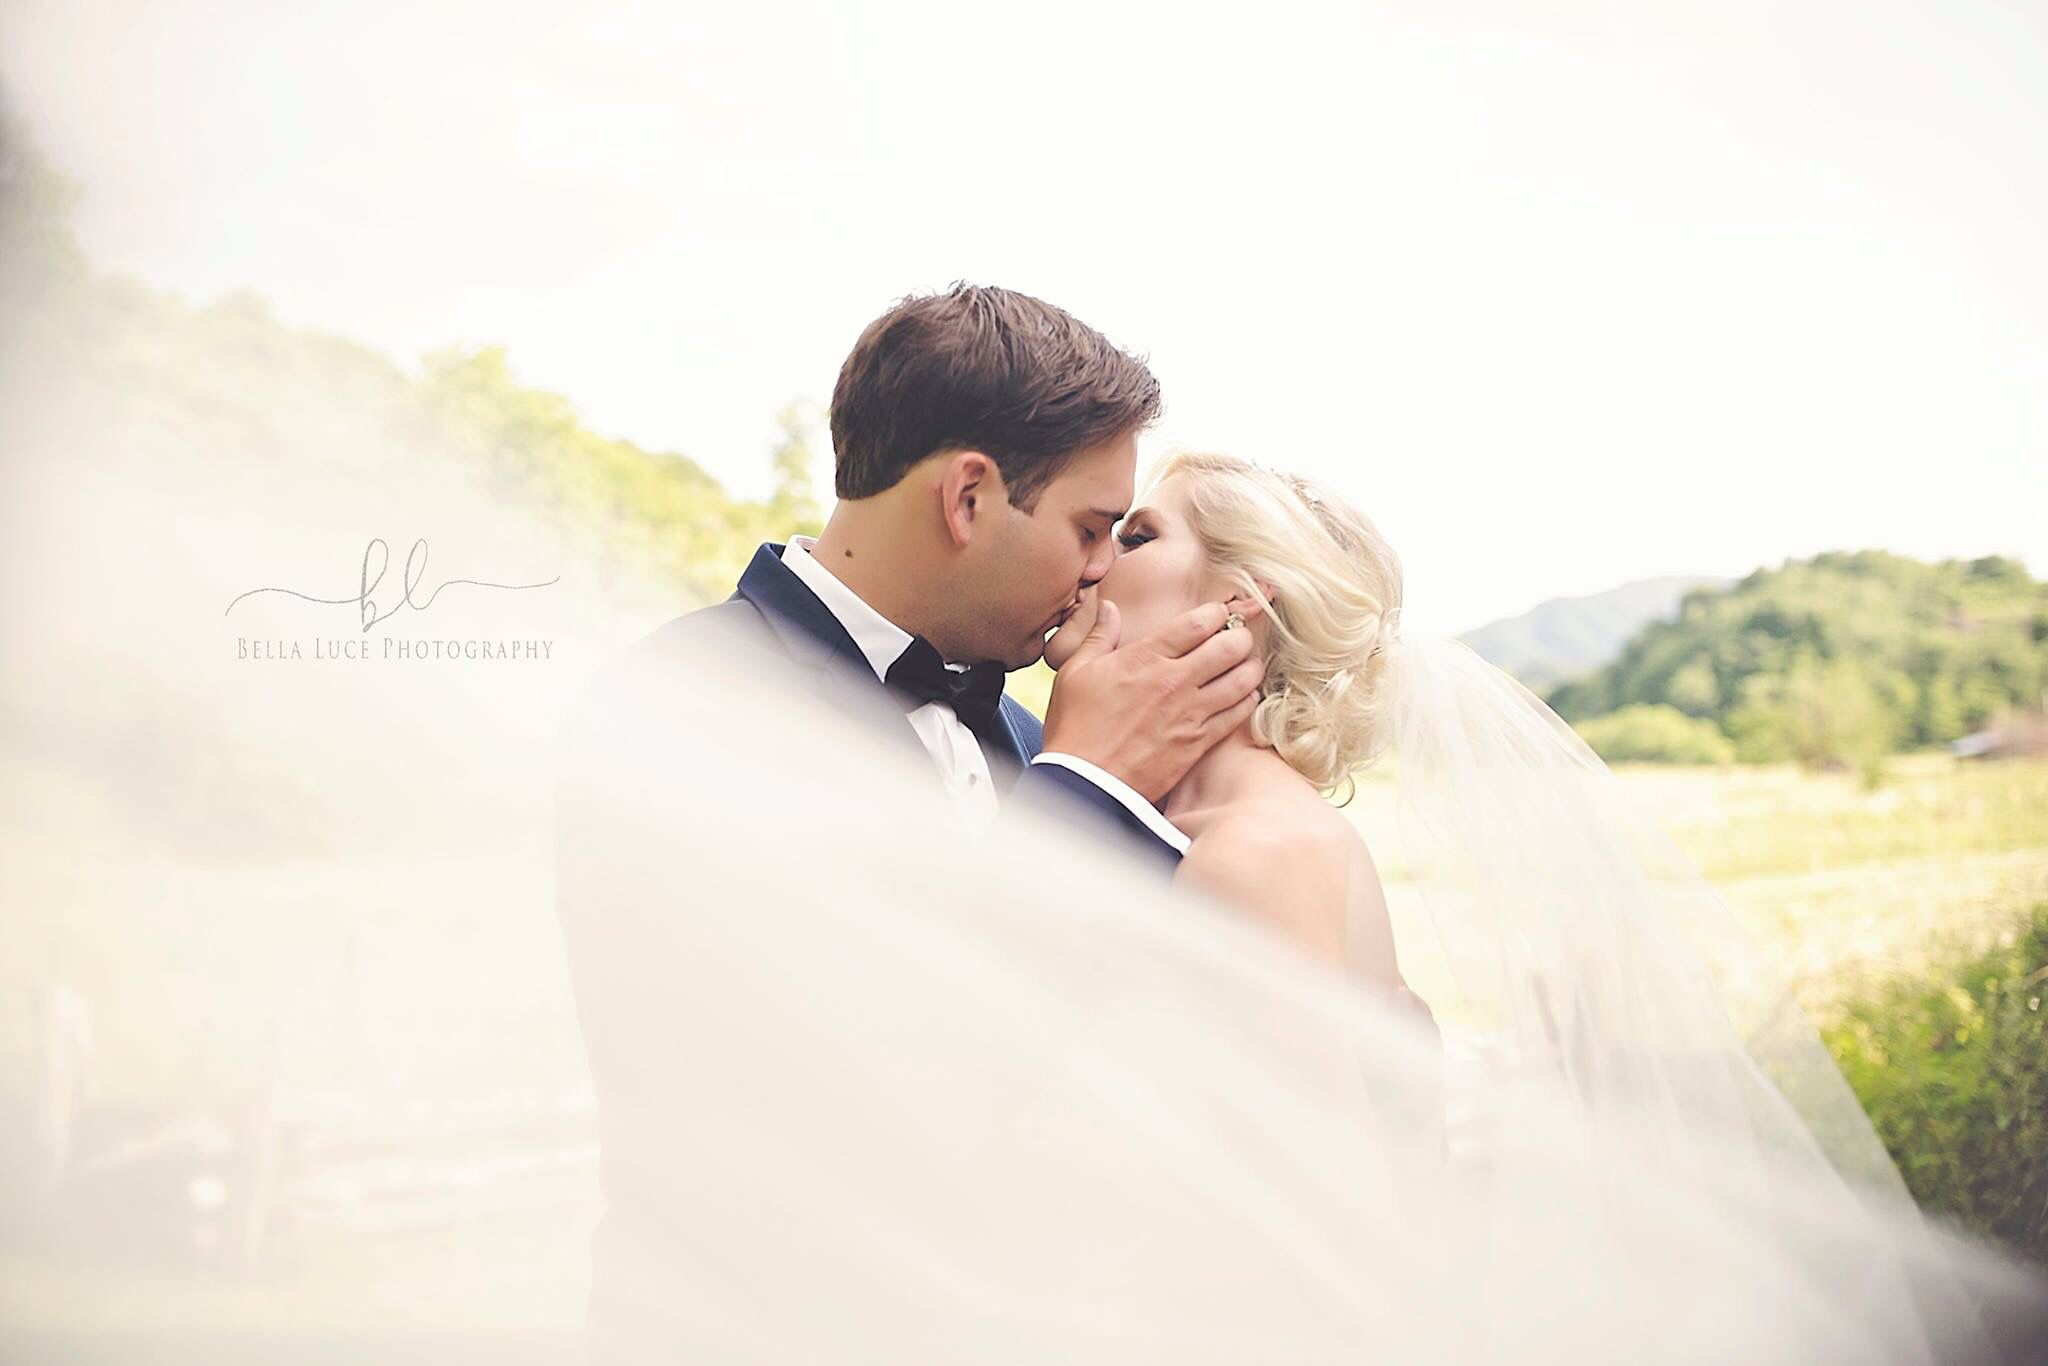 Pregnant wedding dress fail  Pin by Mackenzie Griggs on Bella Luce Photography  Pinterest